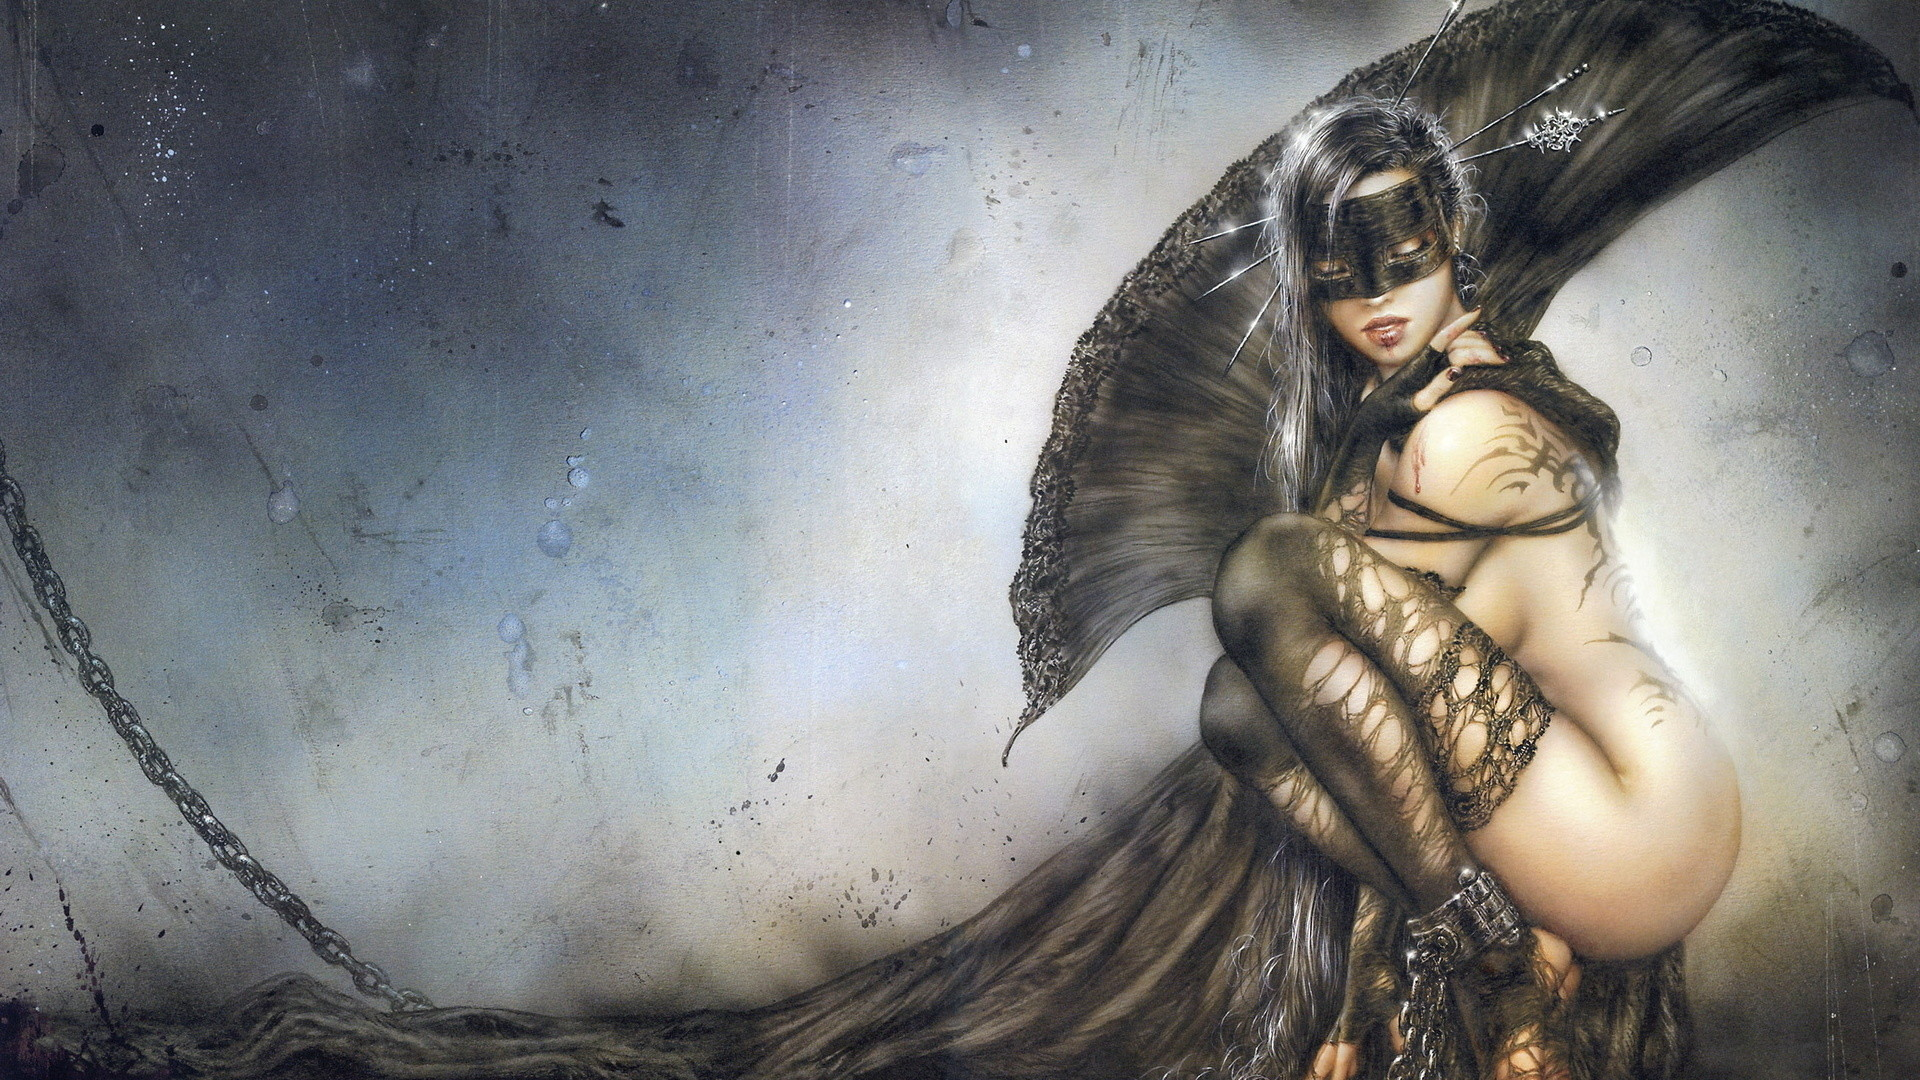 Res: 1920x1080, The Needles Of Joy, Kindly, Chain, Girl, Mask, Luis Royo,